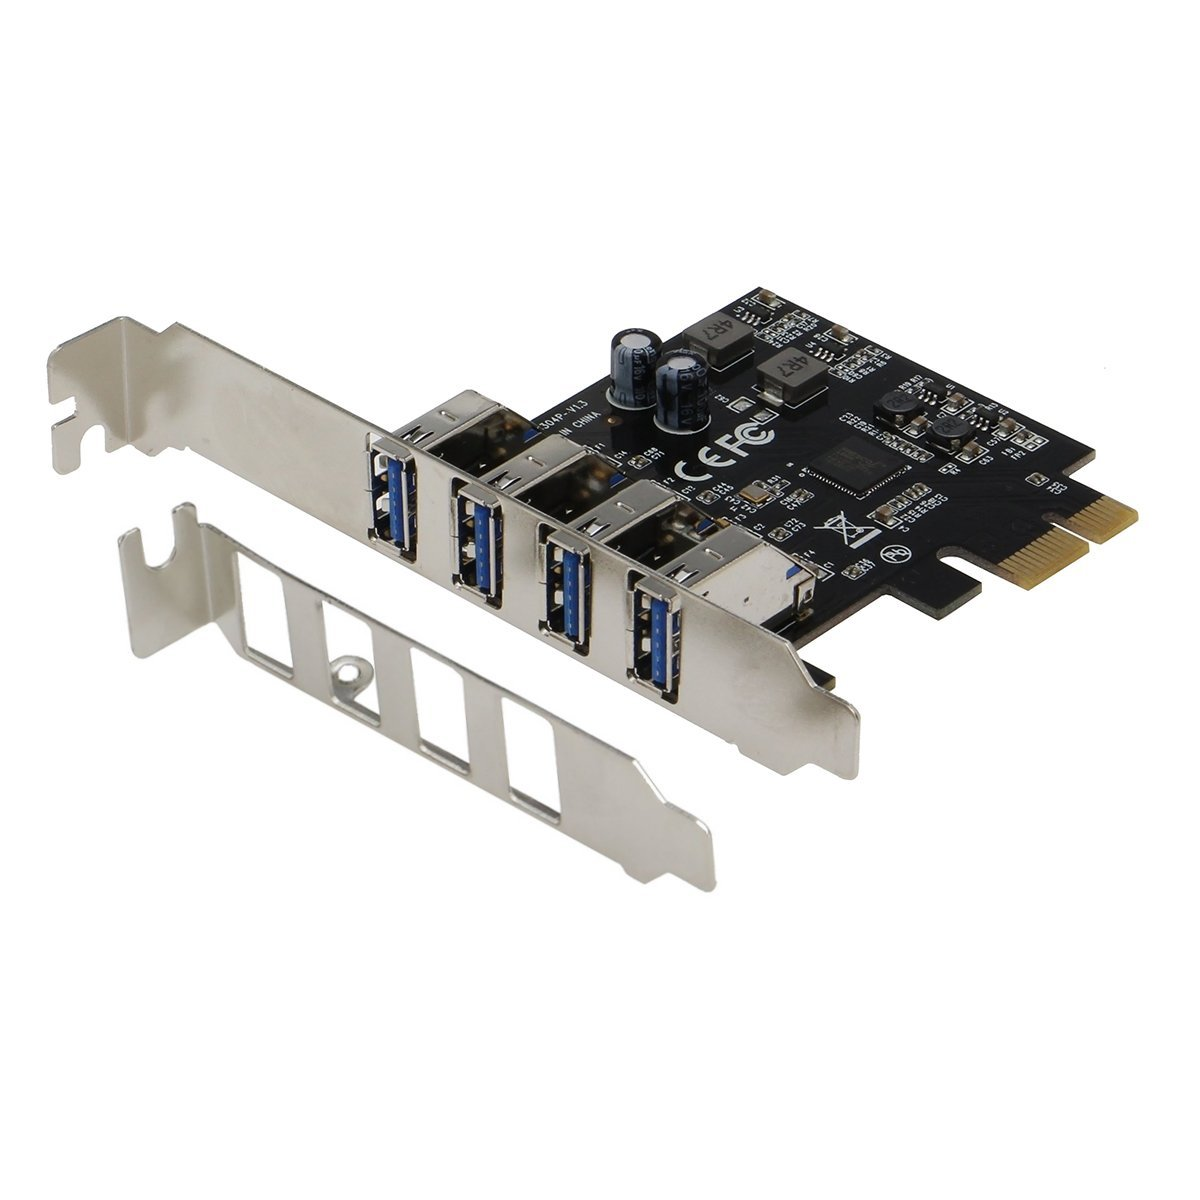 SEDNA - PCI Express USB 3.1 Gen I ( 5Gbps ) 4 Port Adapter w